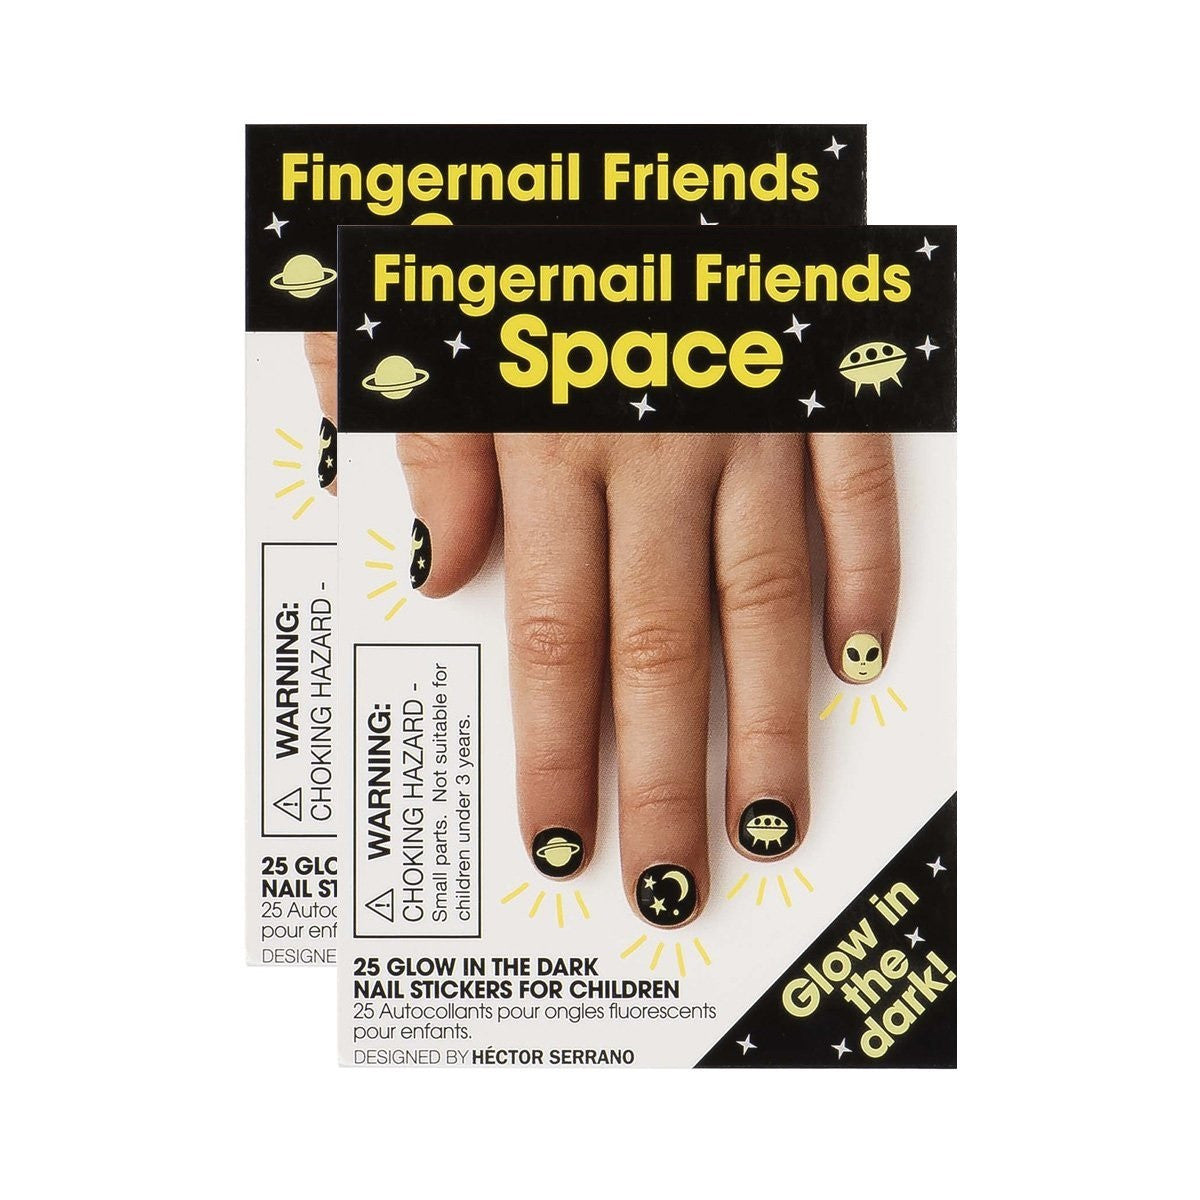 Fingernail Friends Space Glow in the Dark Nail Stickers Pack of 2 - Off The Wall Toys and Gifts